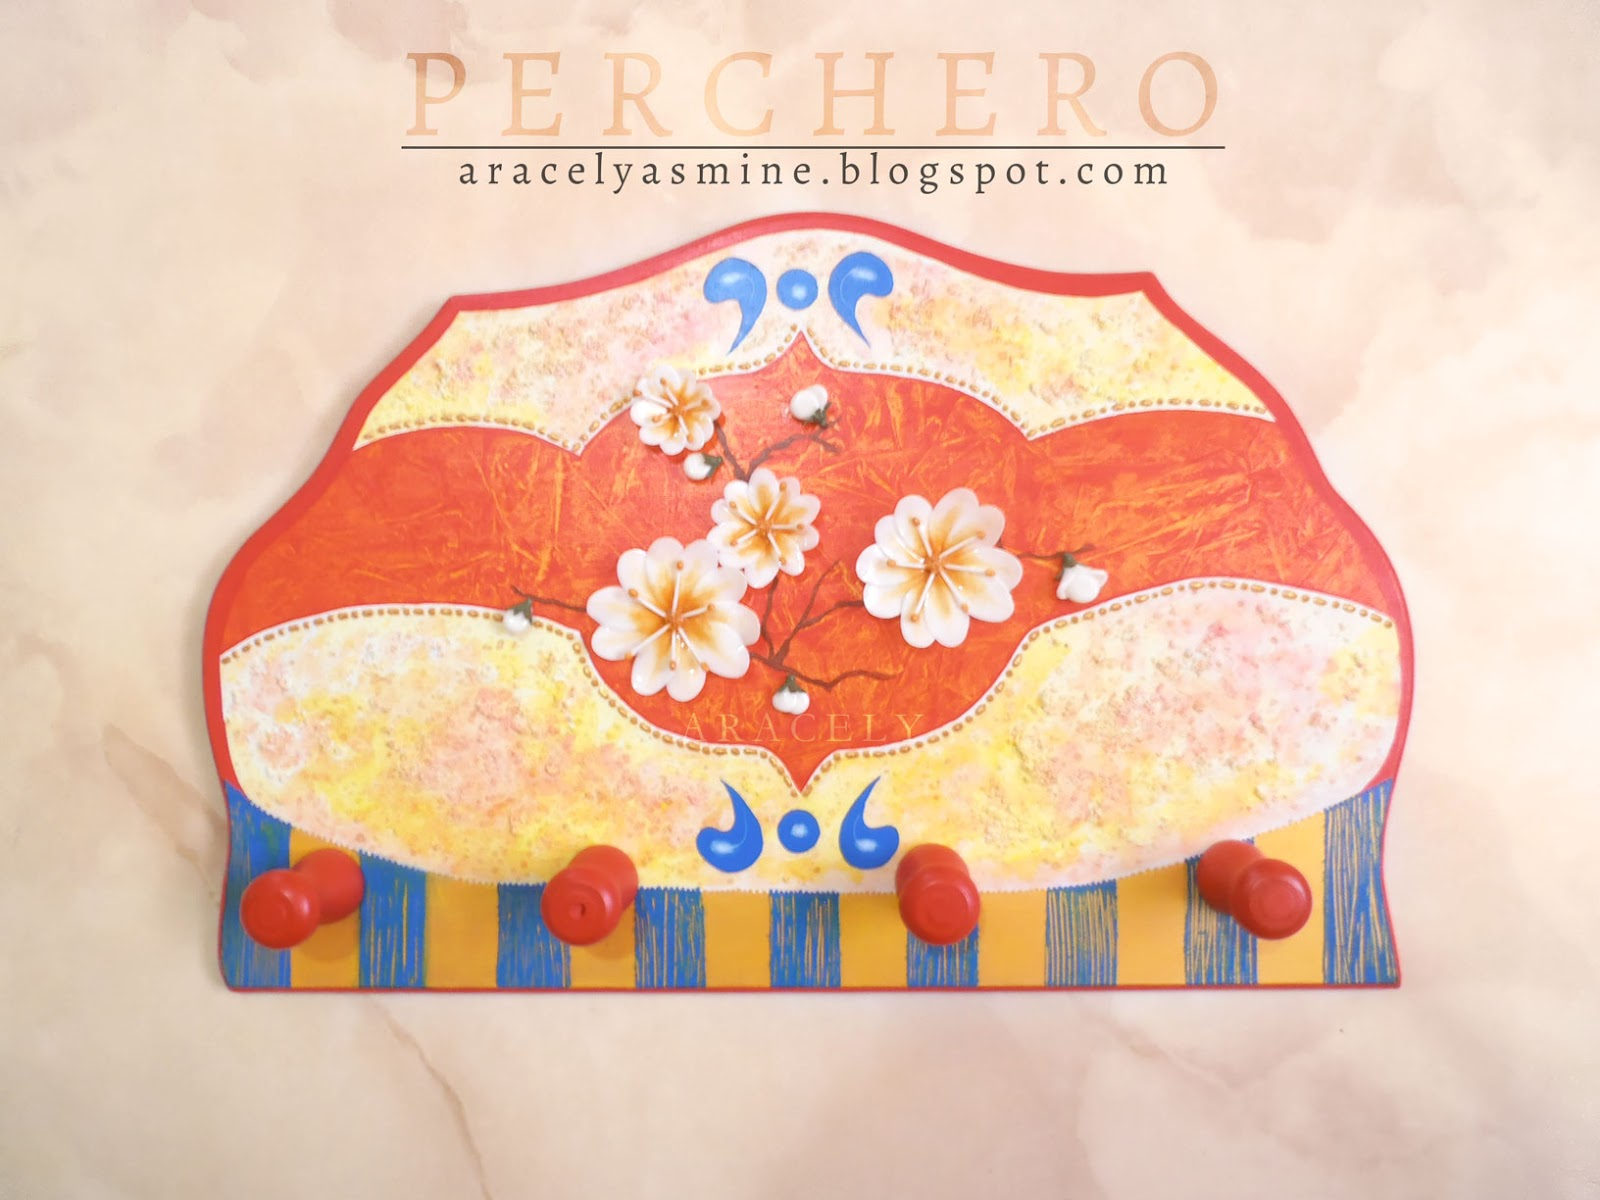 perchero trupan pintura decorativa porcelana fria